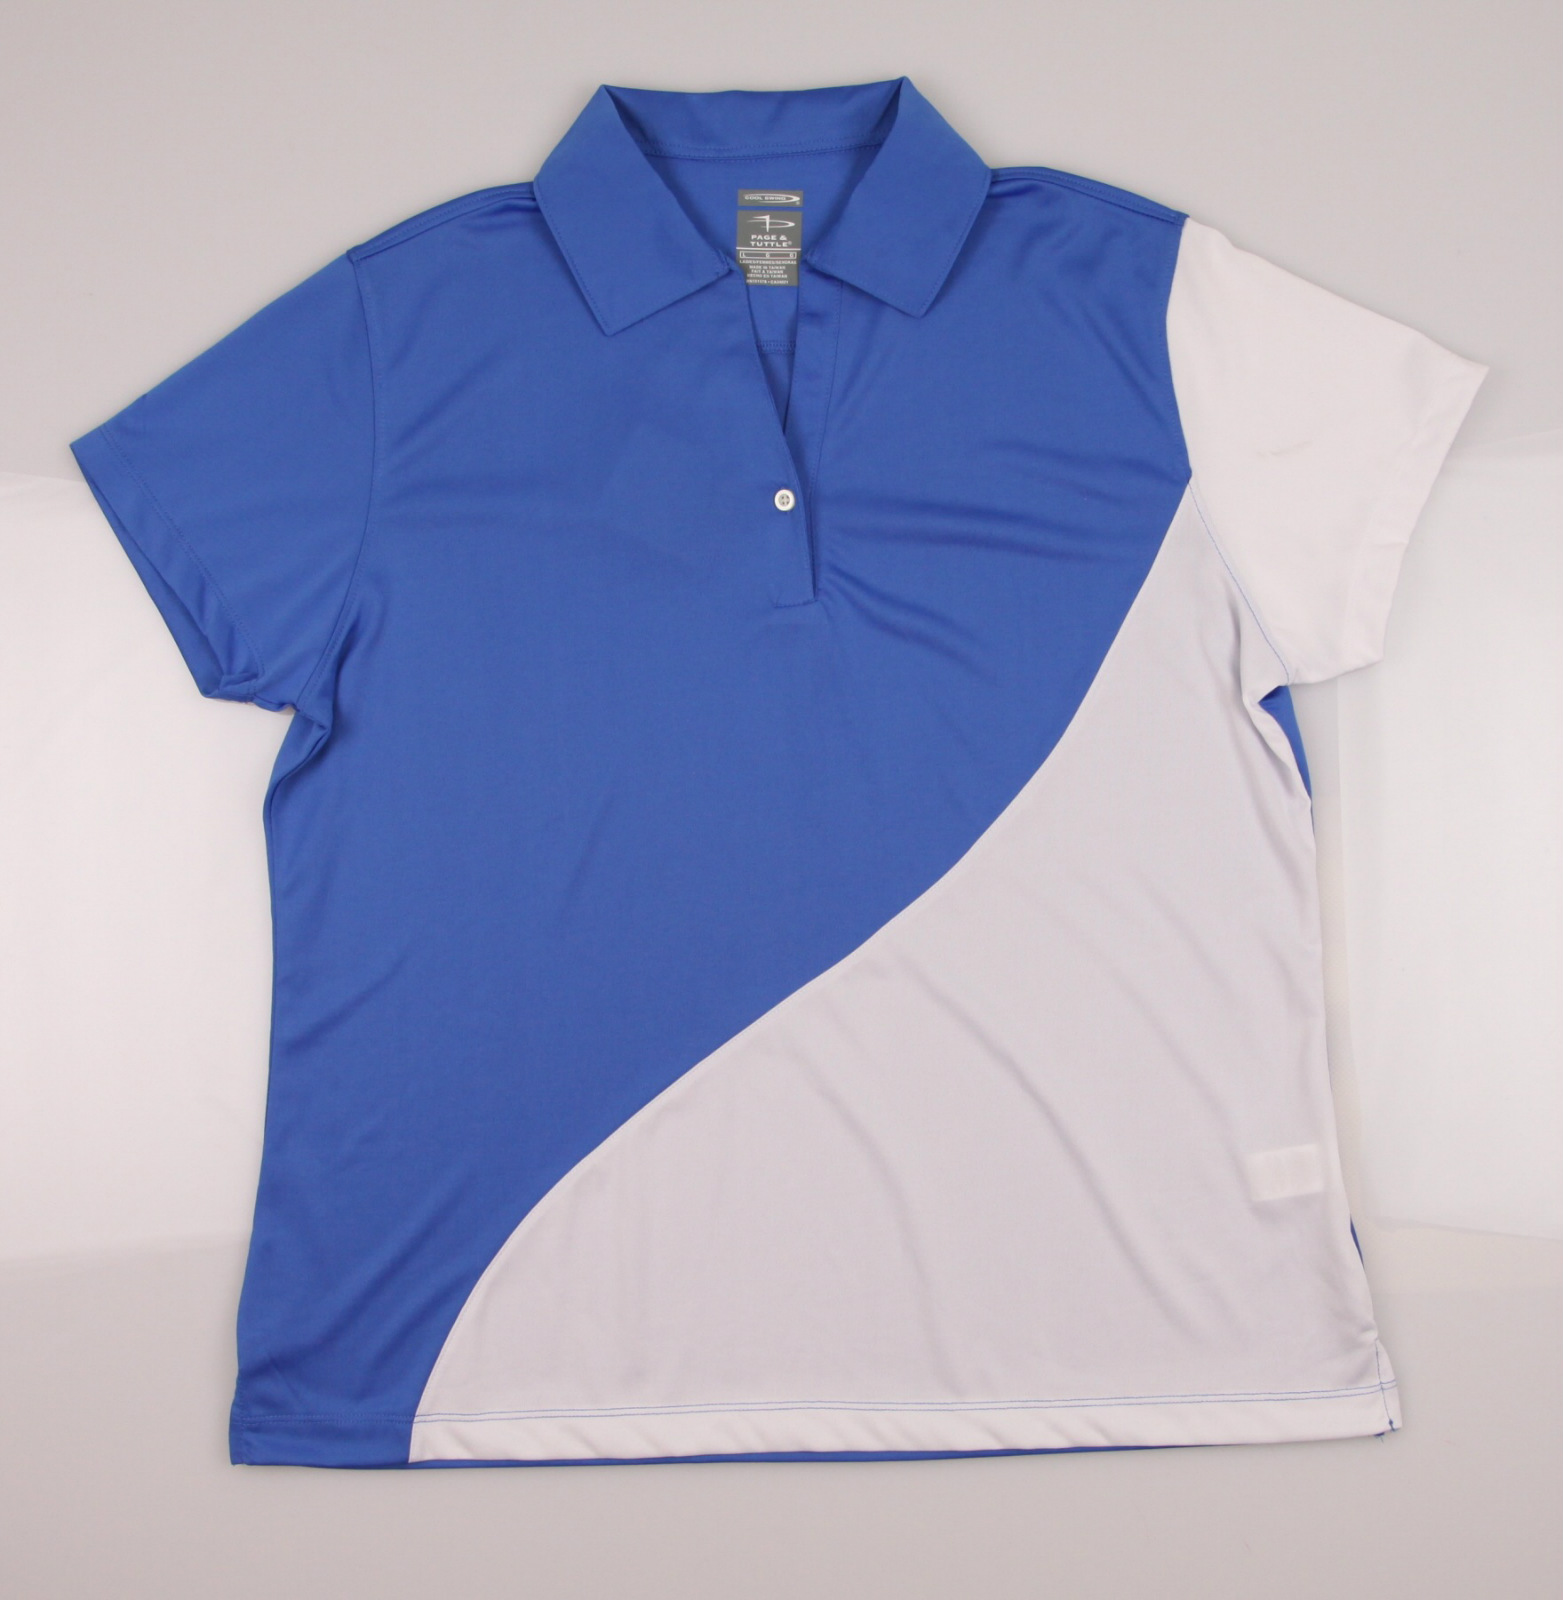 New Women 39 S Page Tuttle Cool Swing Performance Golf Polo